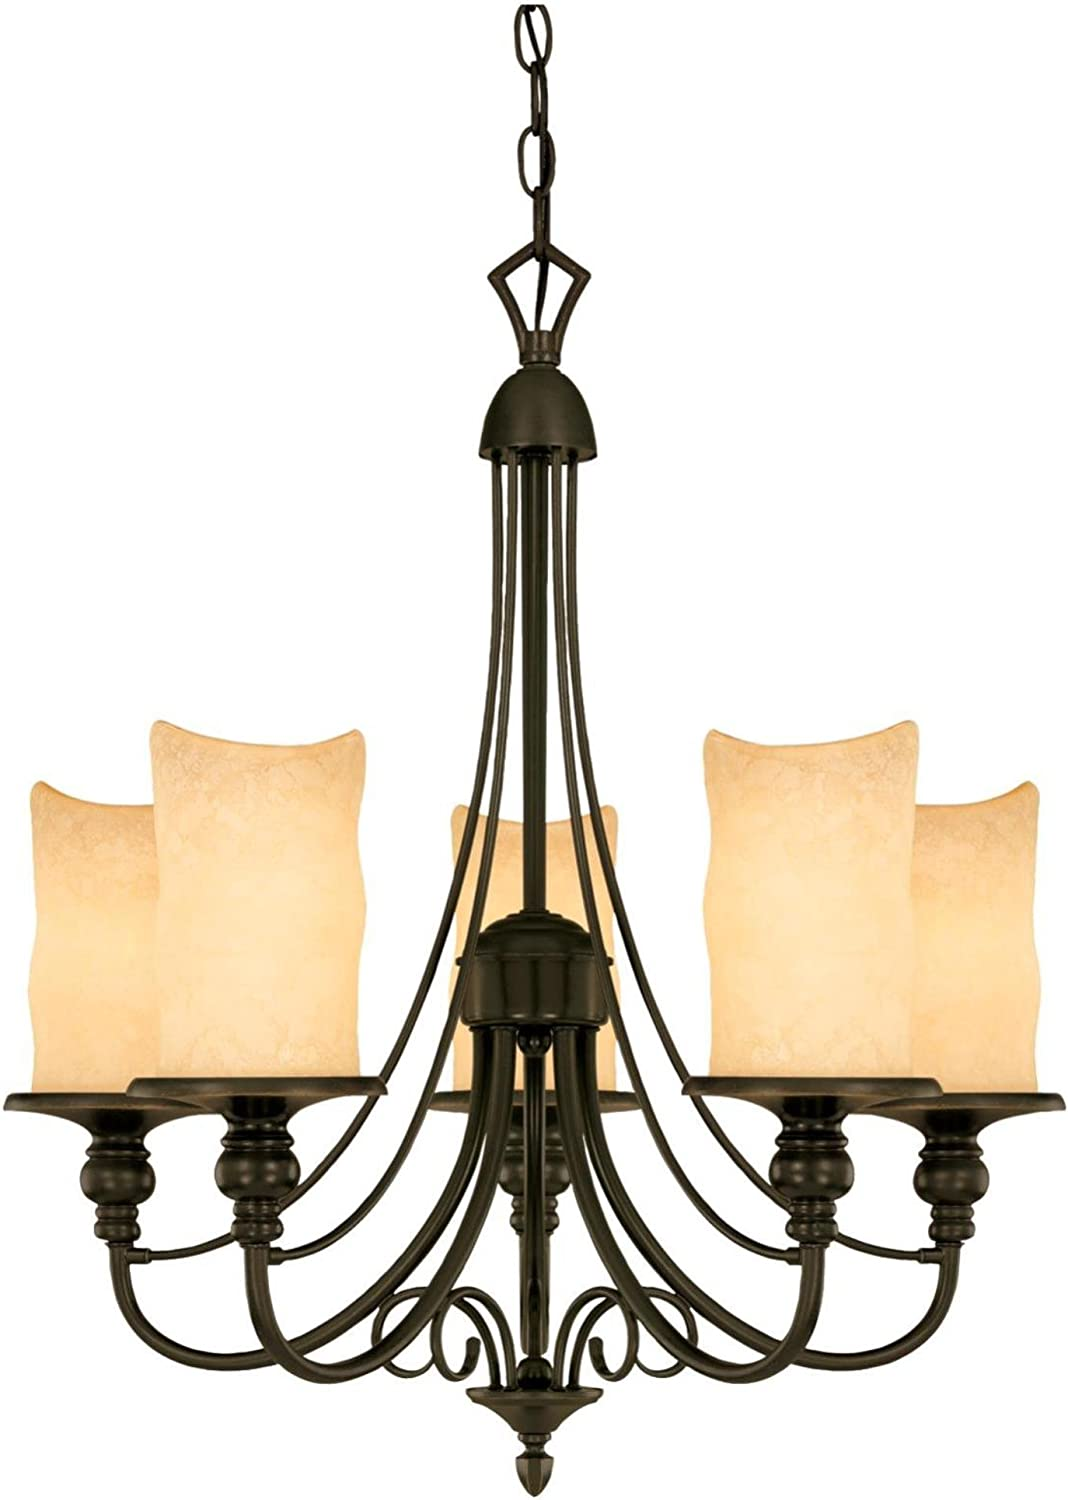 Westinghouse Lighting 69001 Hearthstone Five-Light Chandelier, Burnished Bronze Patina Finish with Burnt Scavo Globe